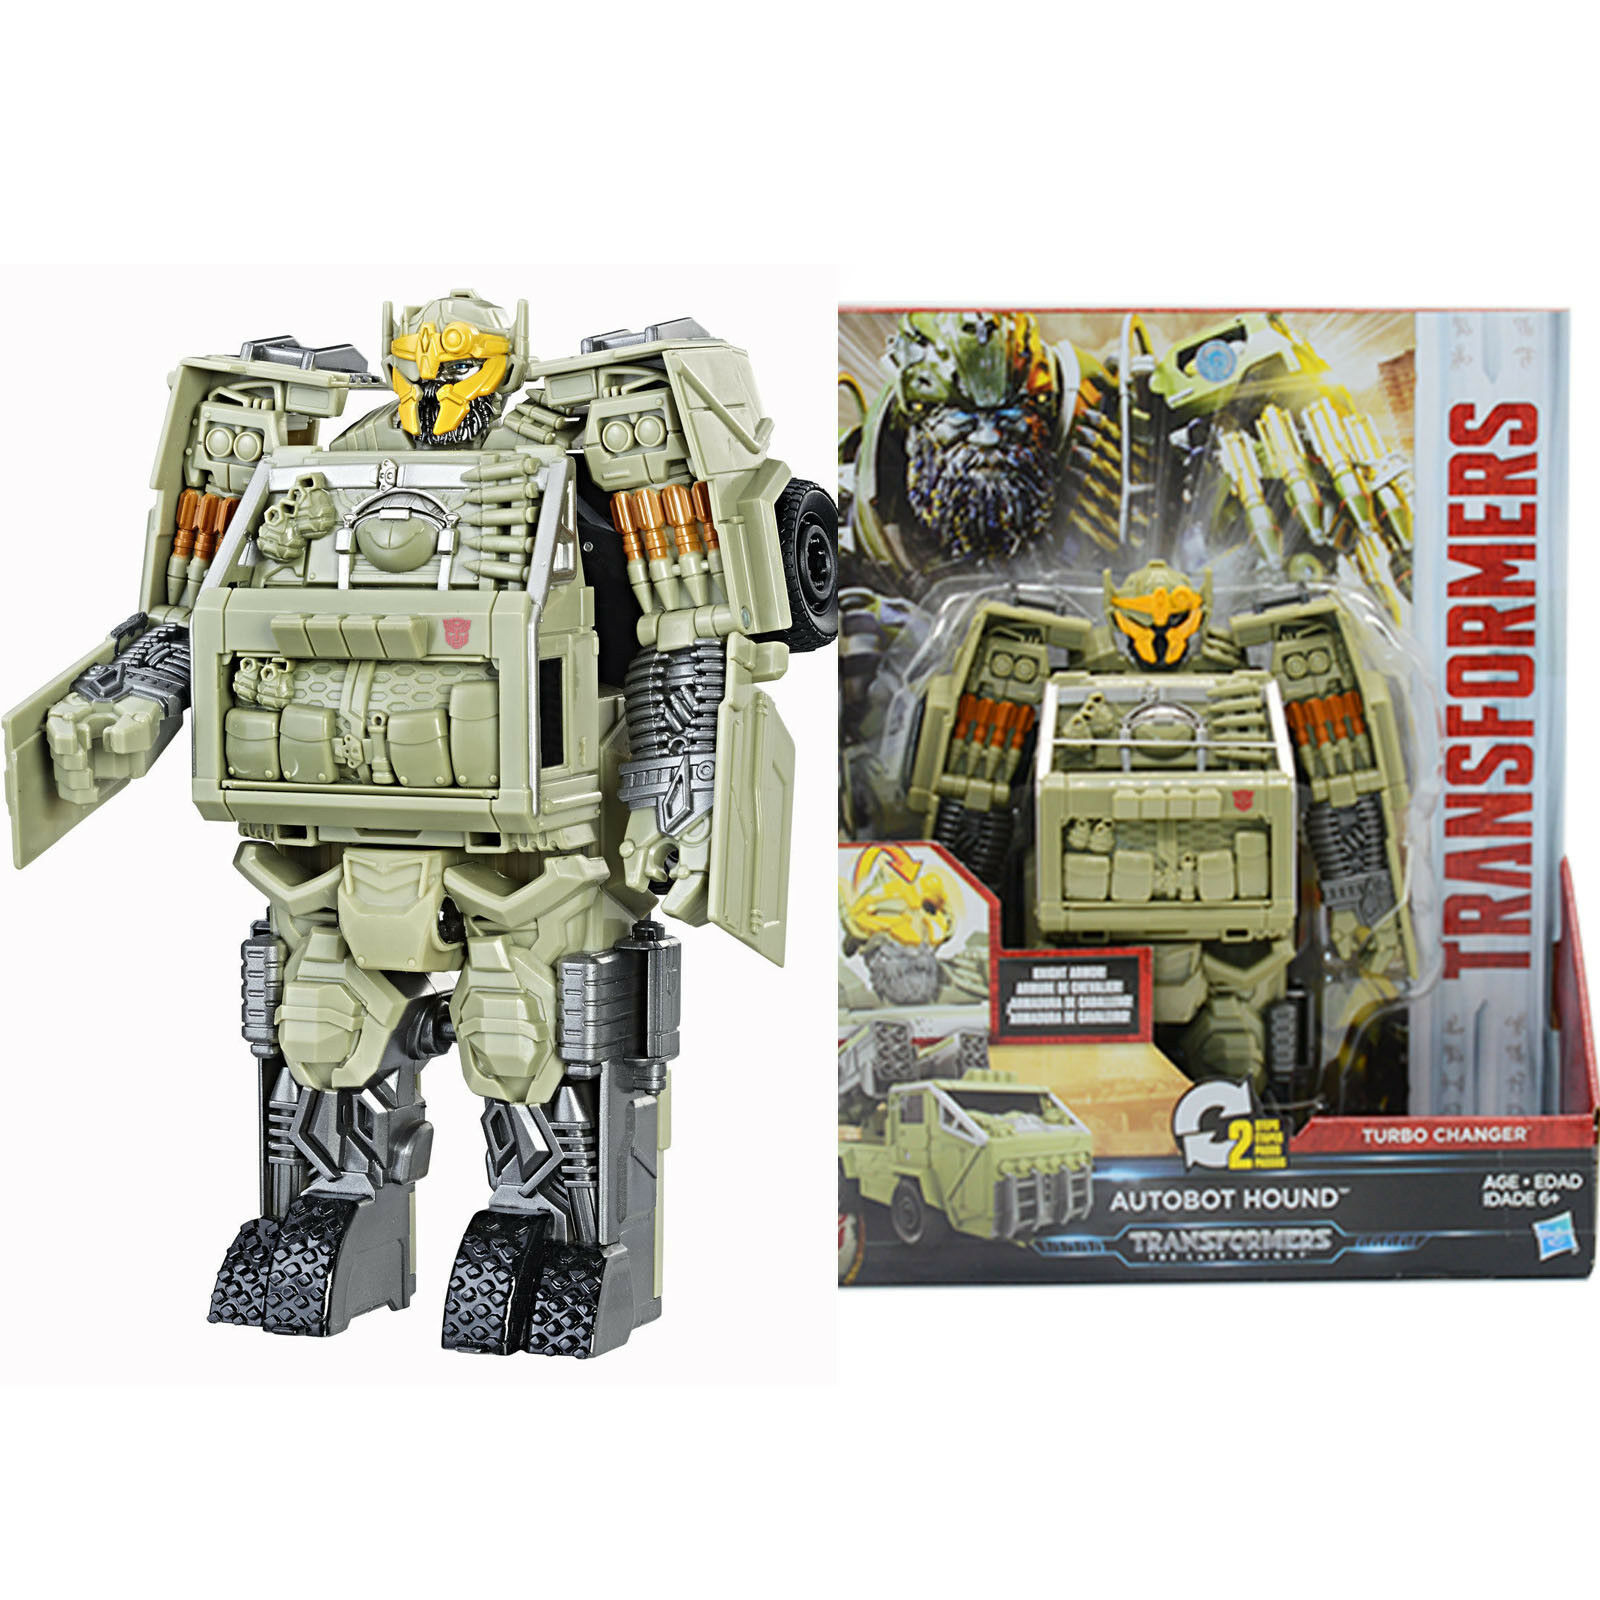 Transformers Movie 5 The Last Knight Turbo Changer AUTOBOT HOUND  Action toy NEW